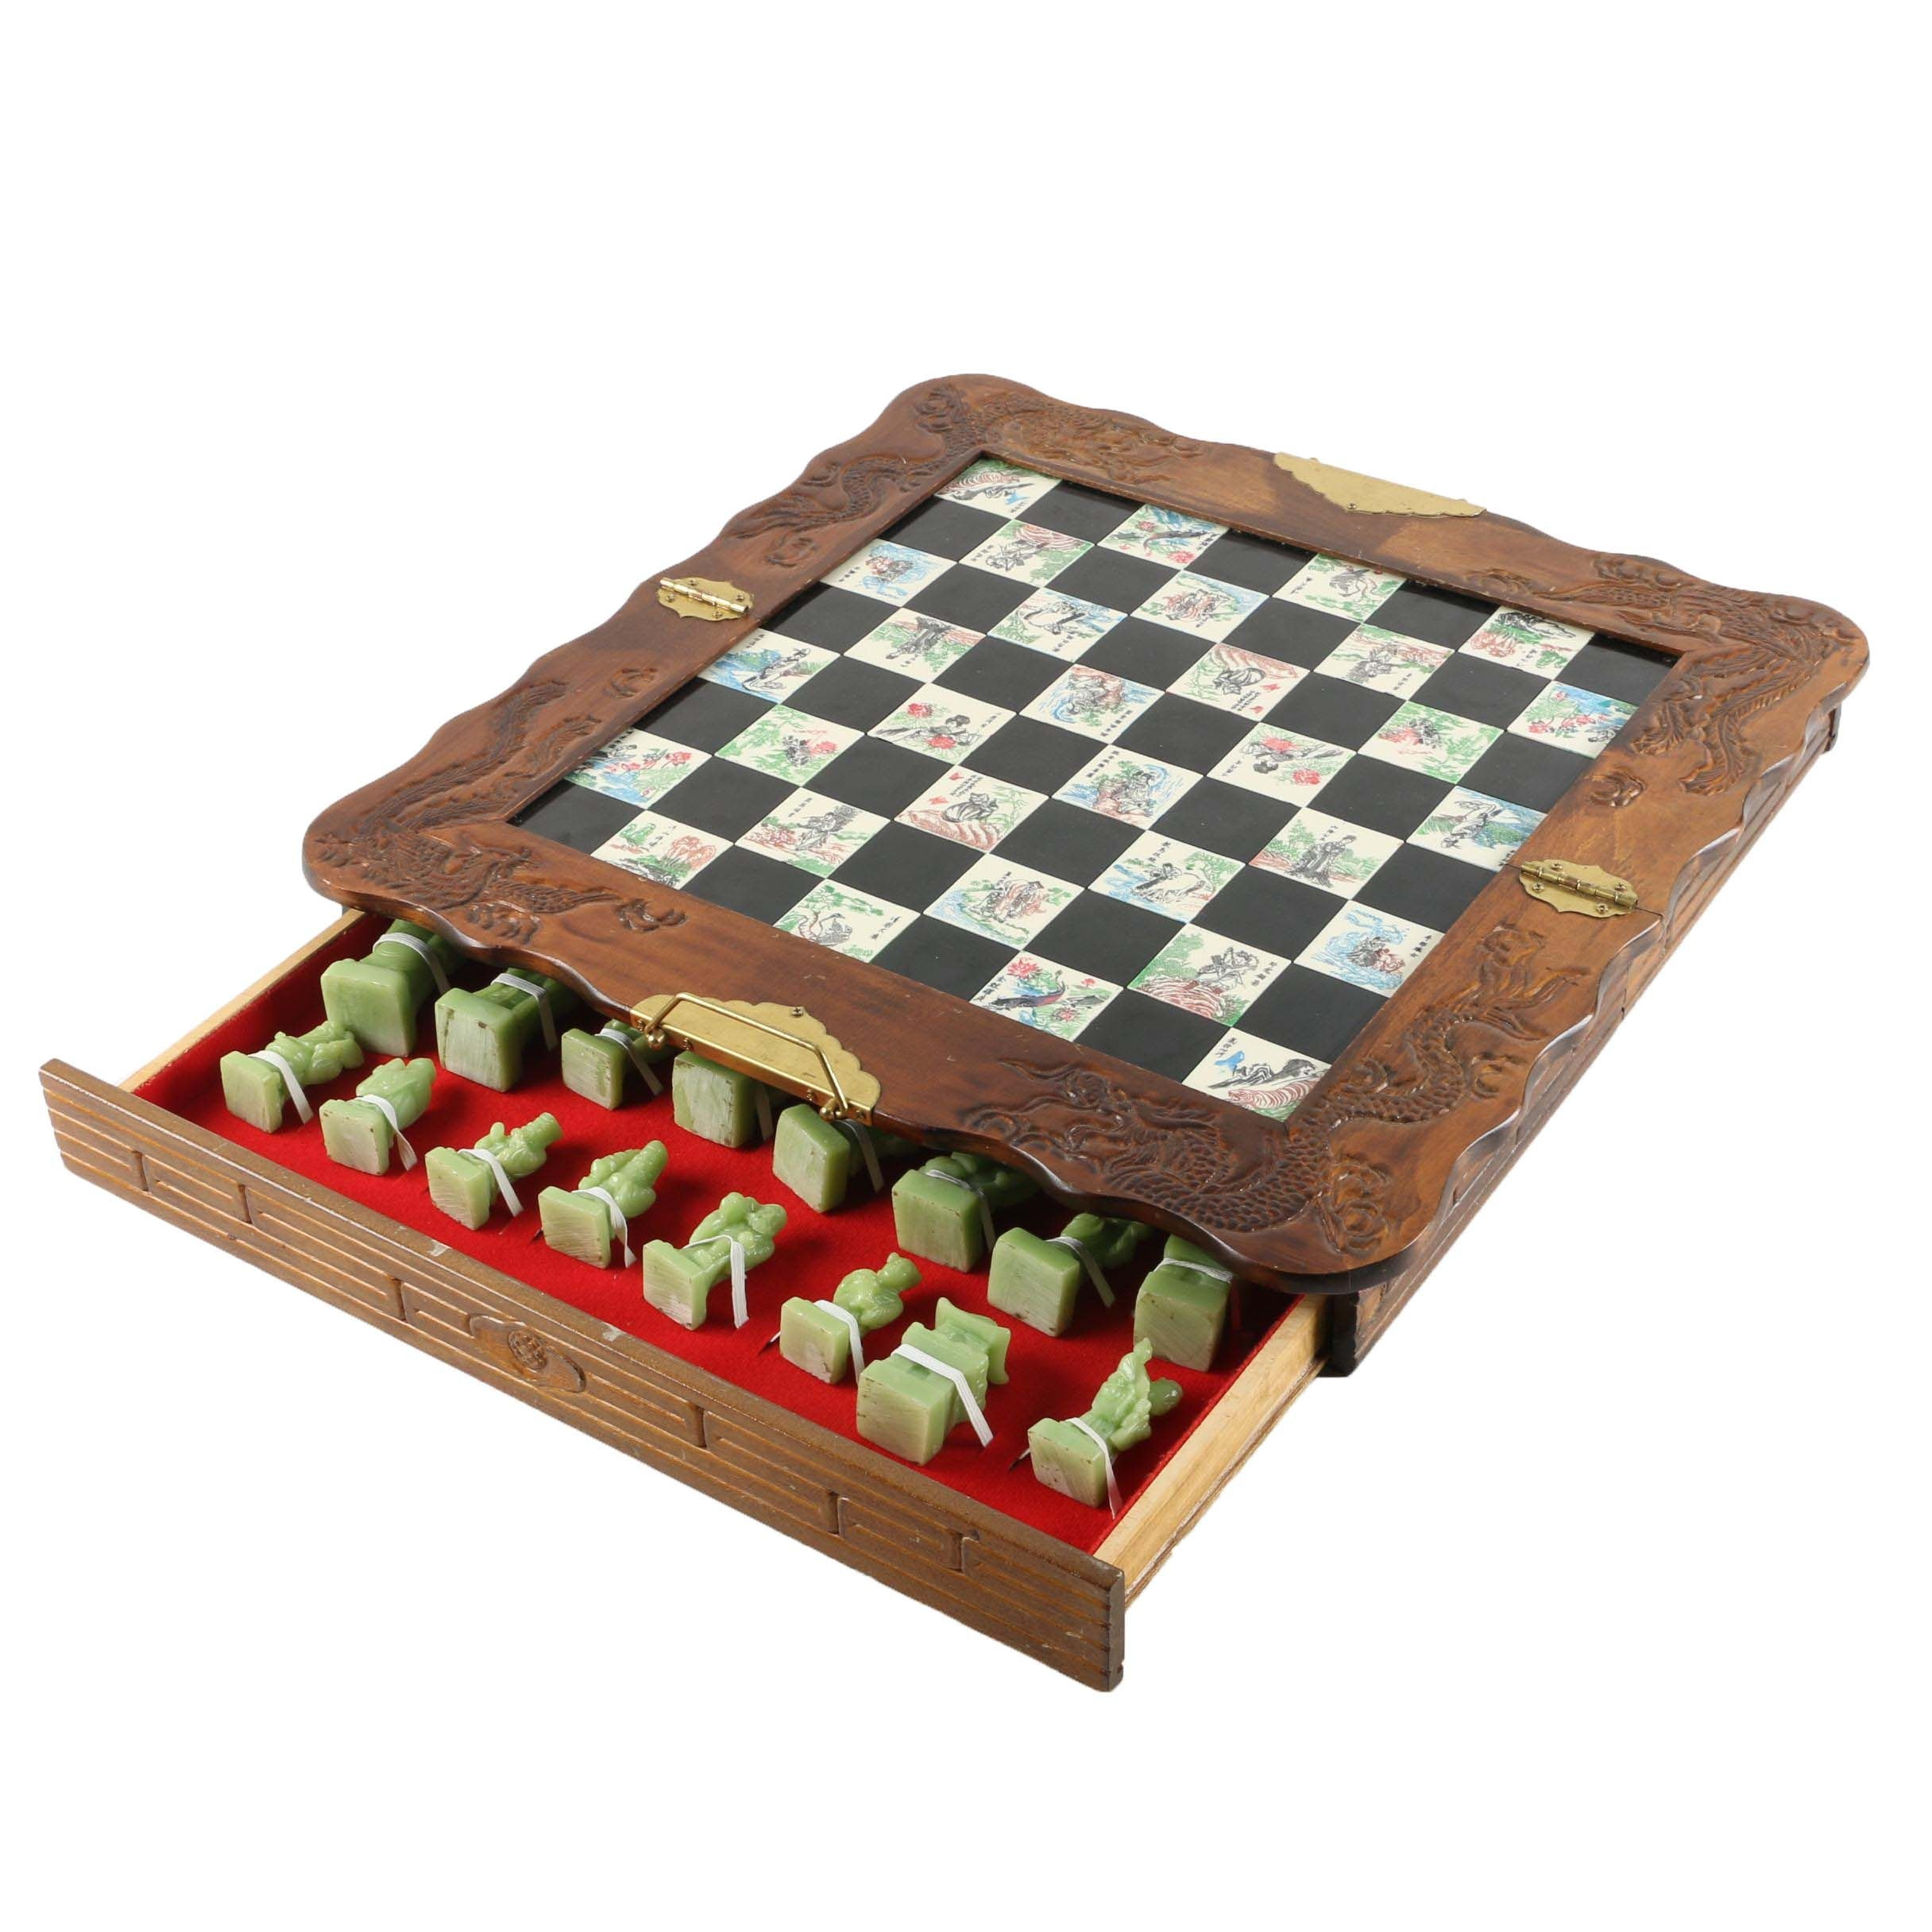 Chinese Travel Chess Set with Cast Resin Game Pieces